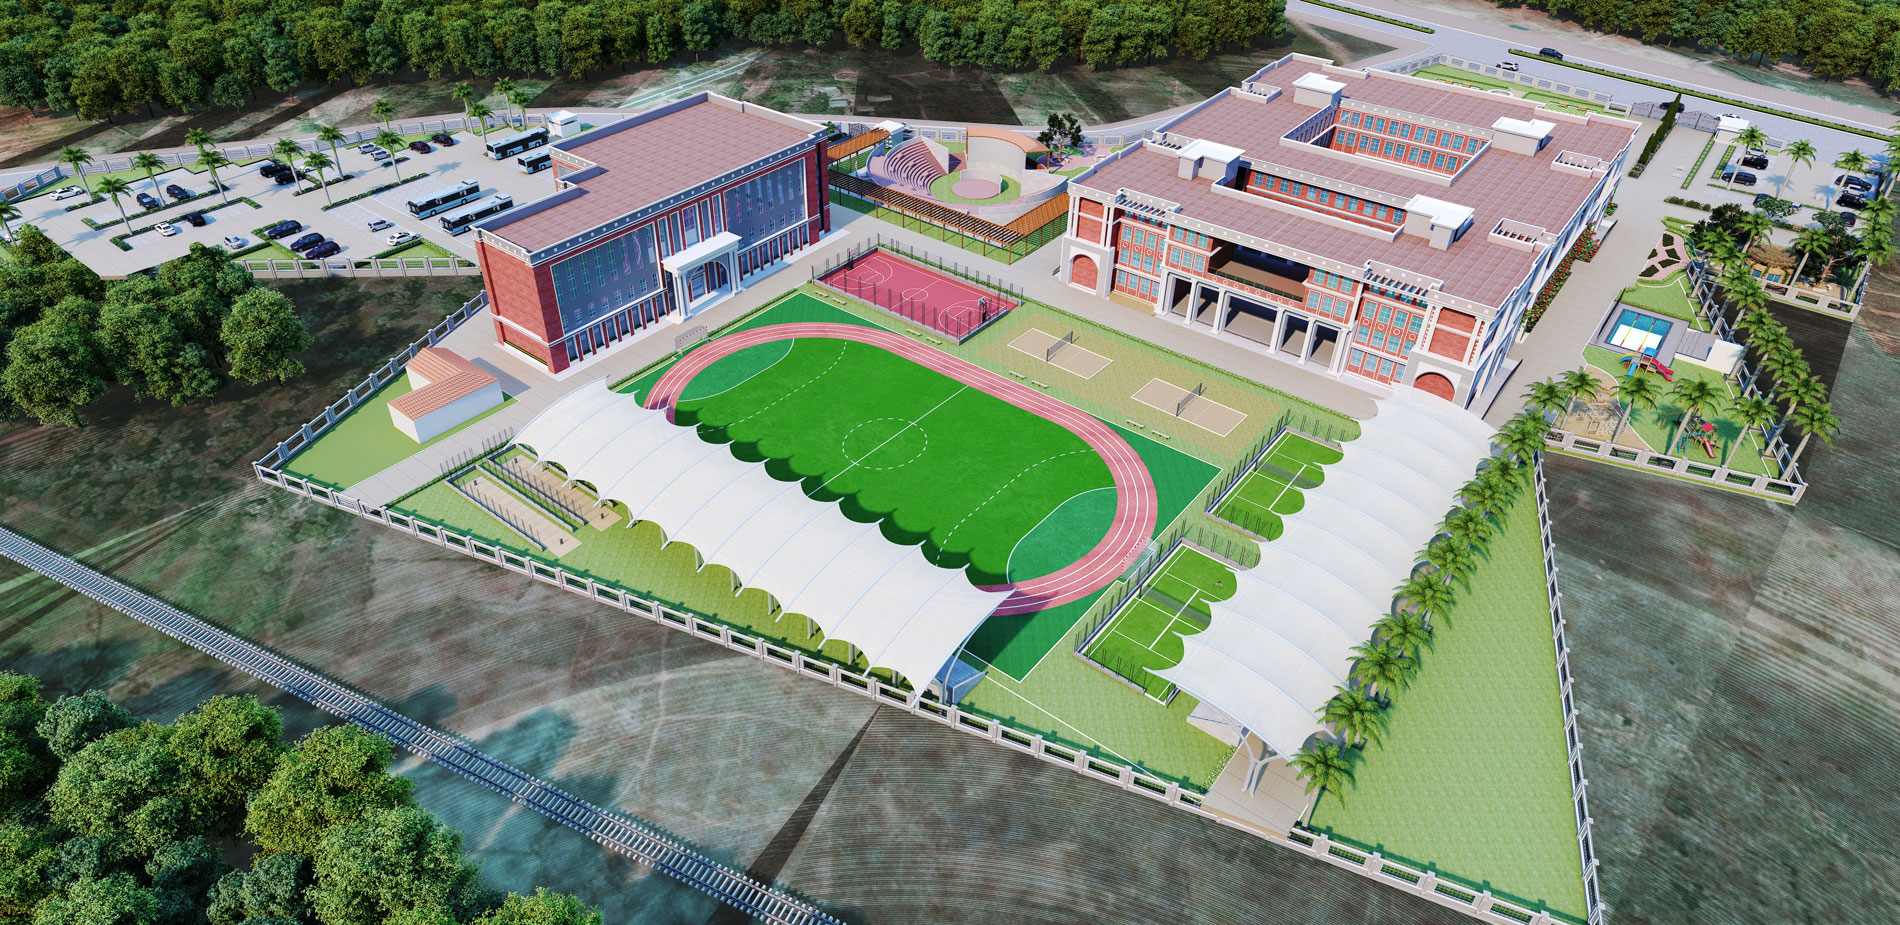 INDIA'S BEST SCHOOL ARCHITECTURE SERVICES